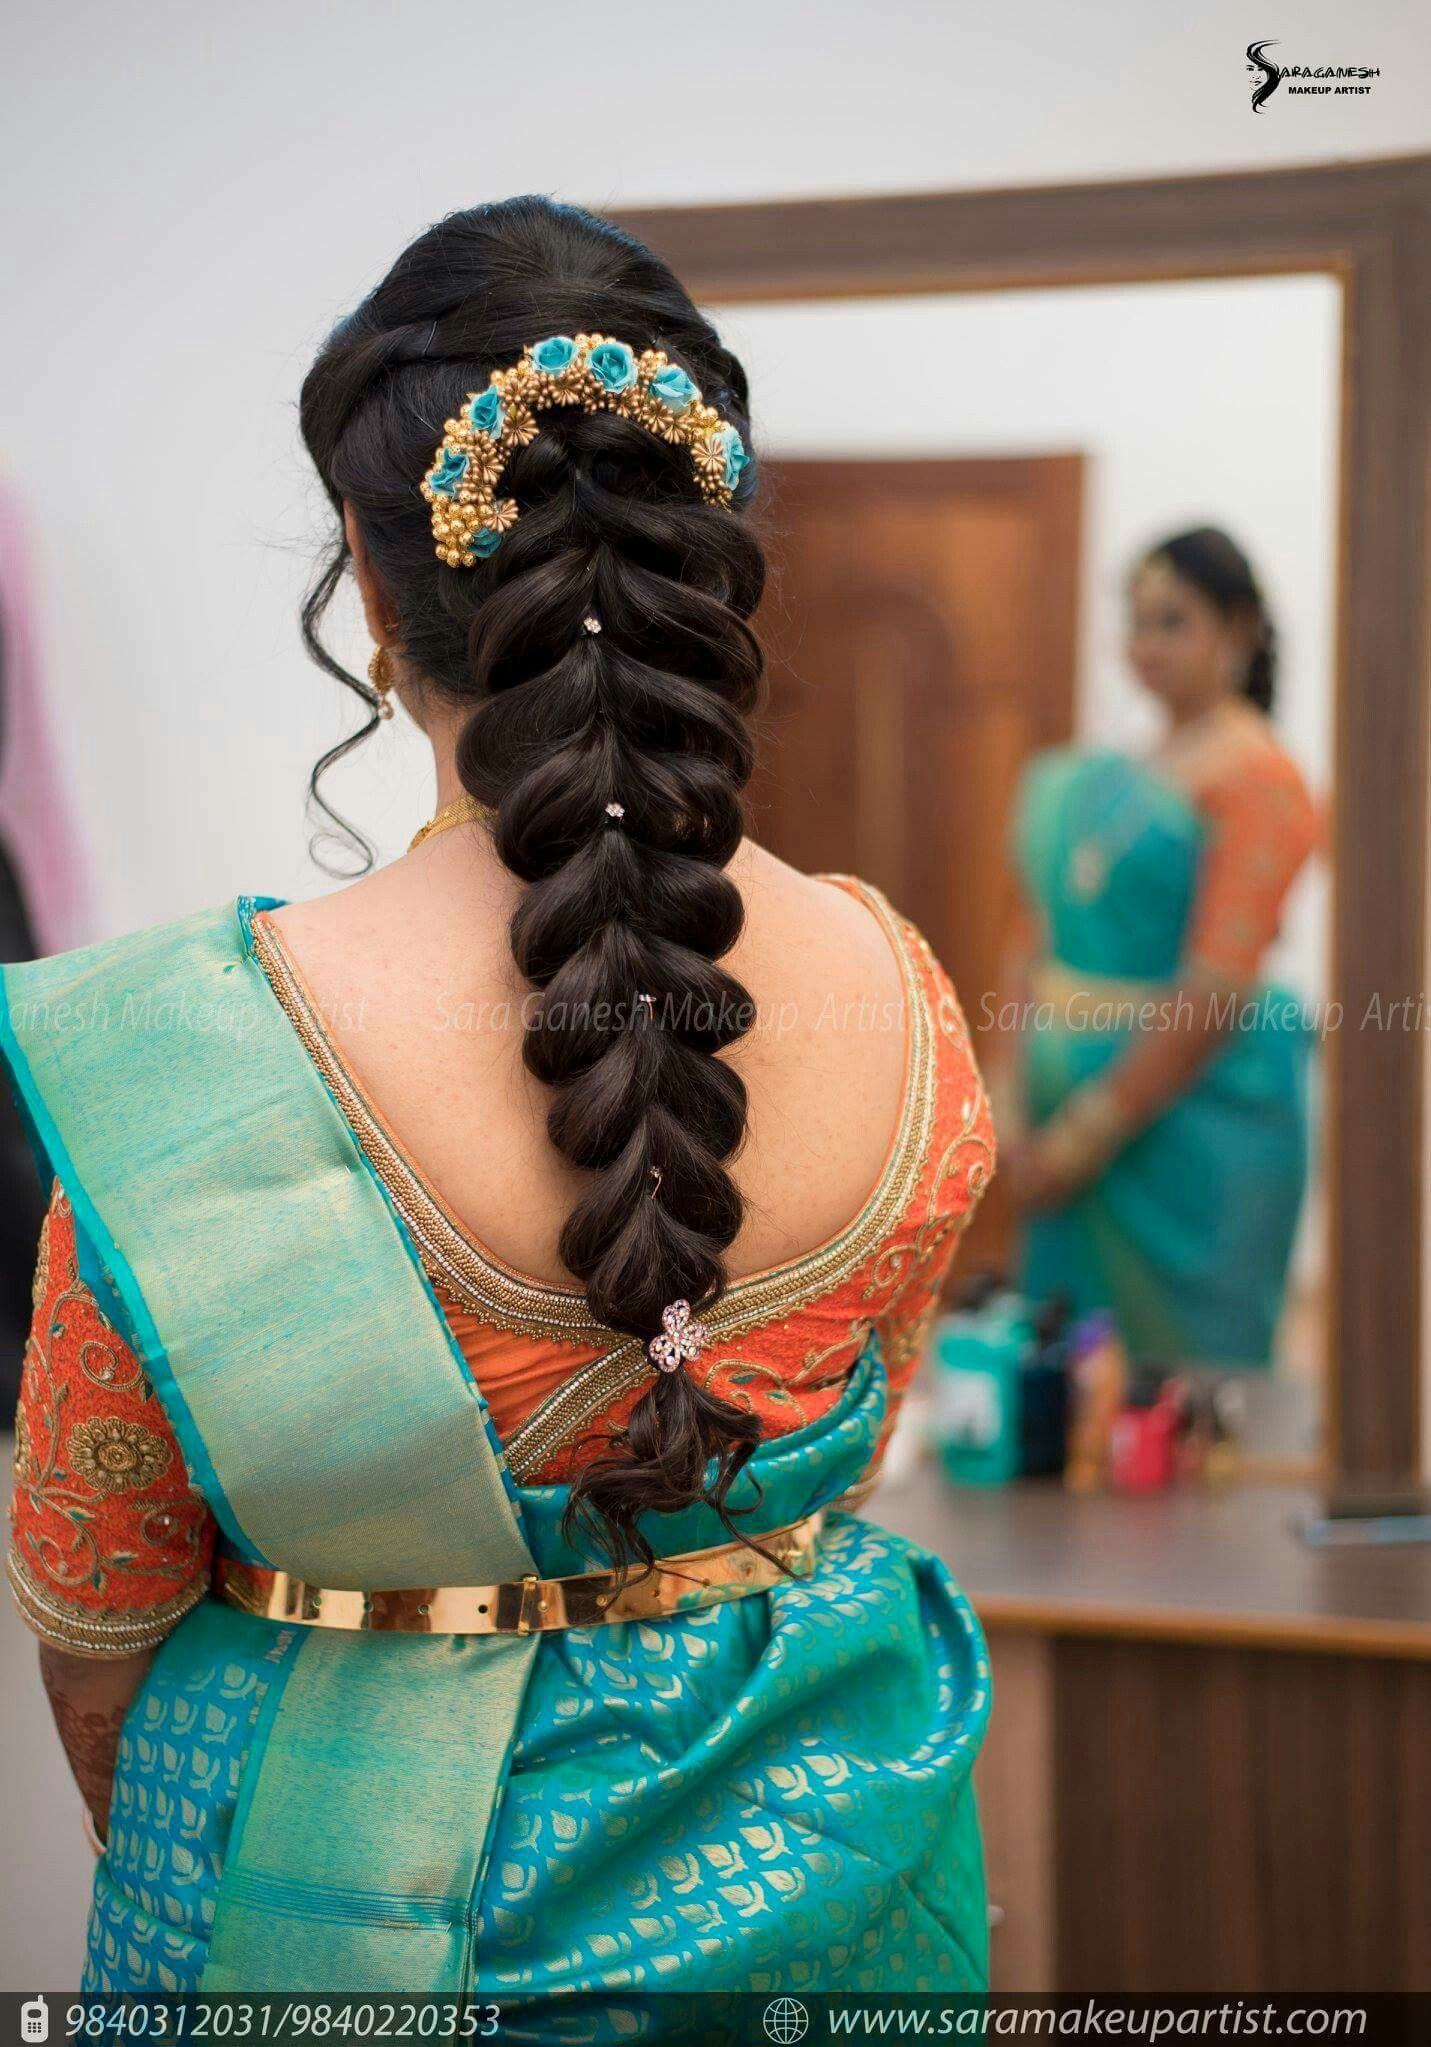 Hairstyles For Indian Wedding Girl Indian Wedding Hairstyles Hair Styles Indian Bridal Hairstyles